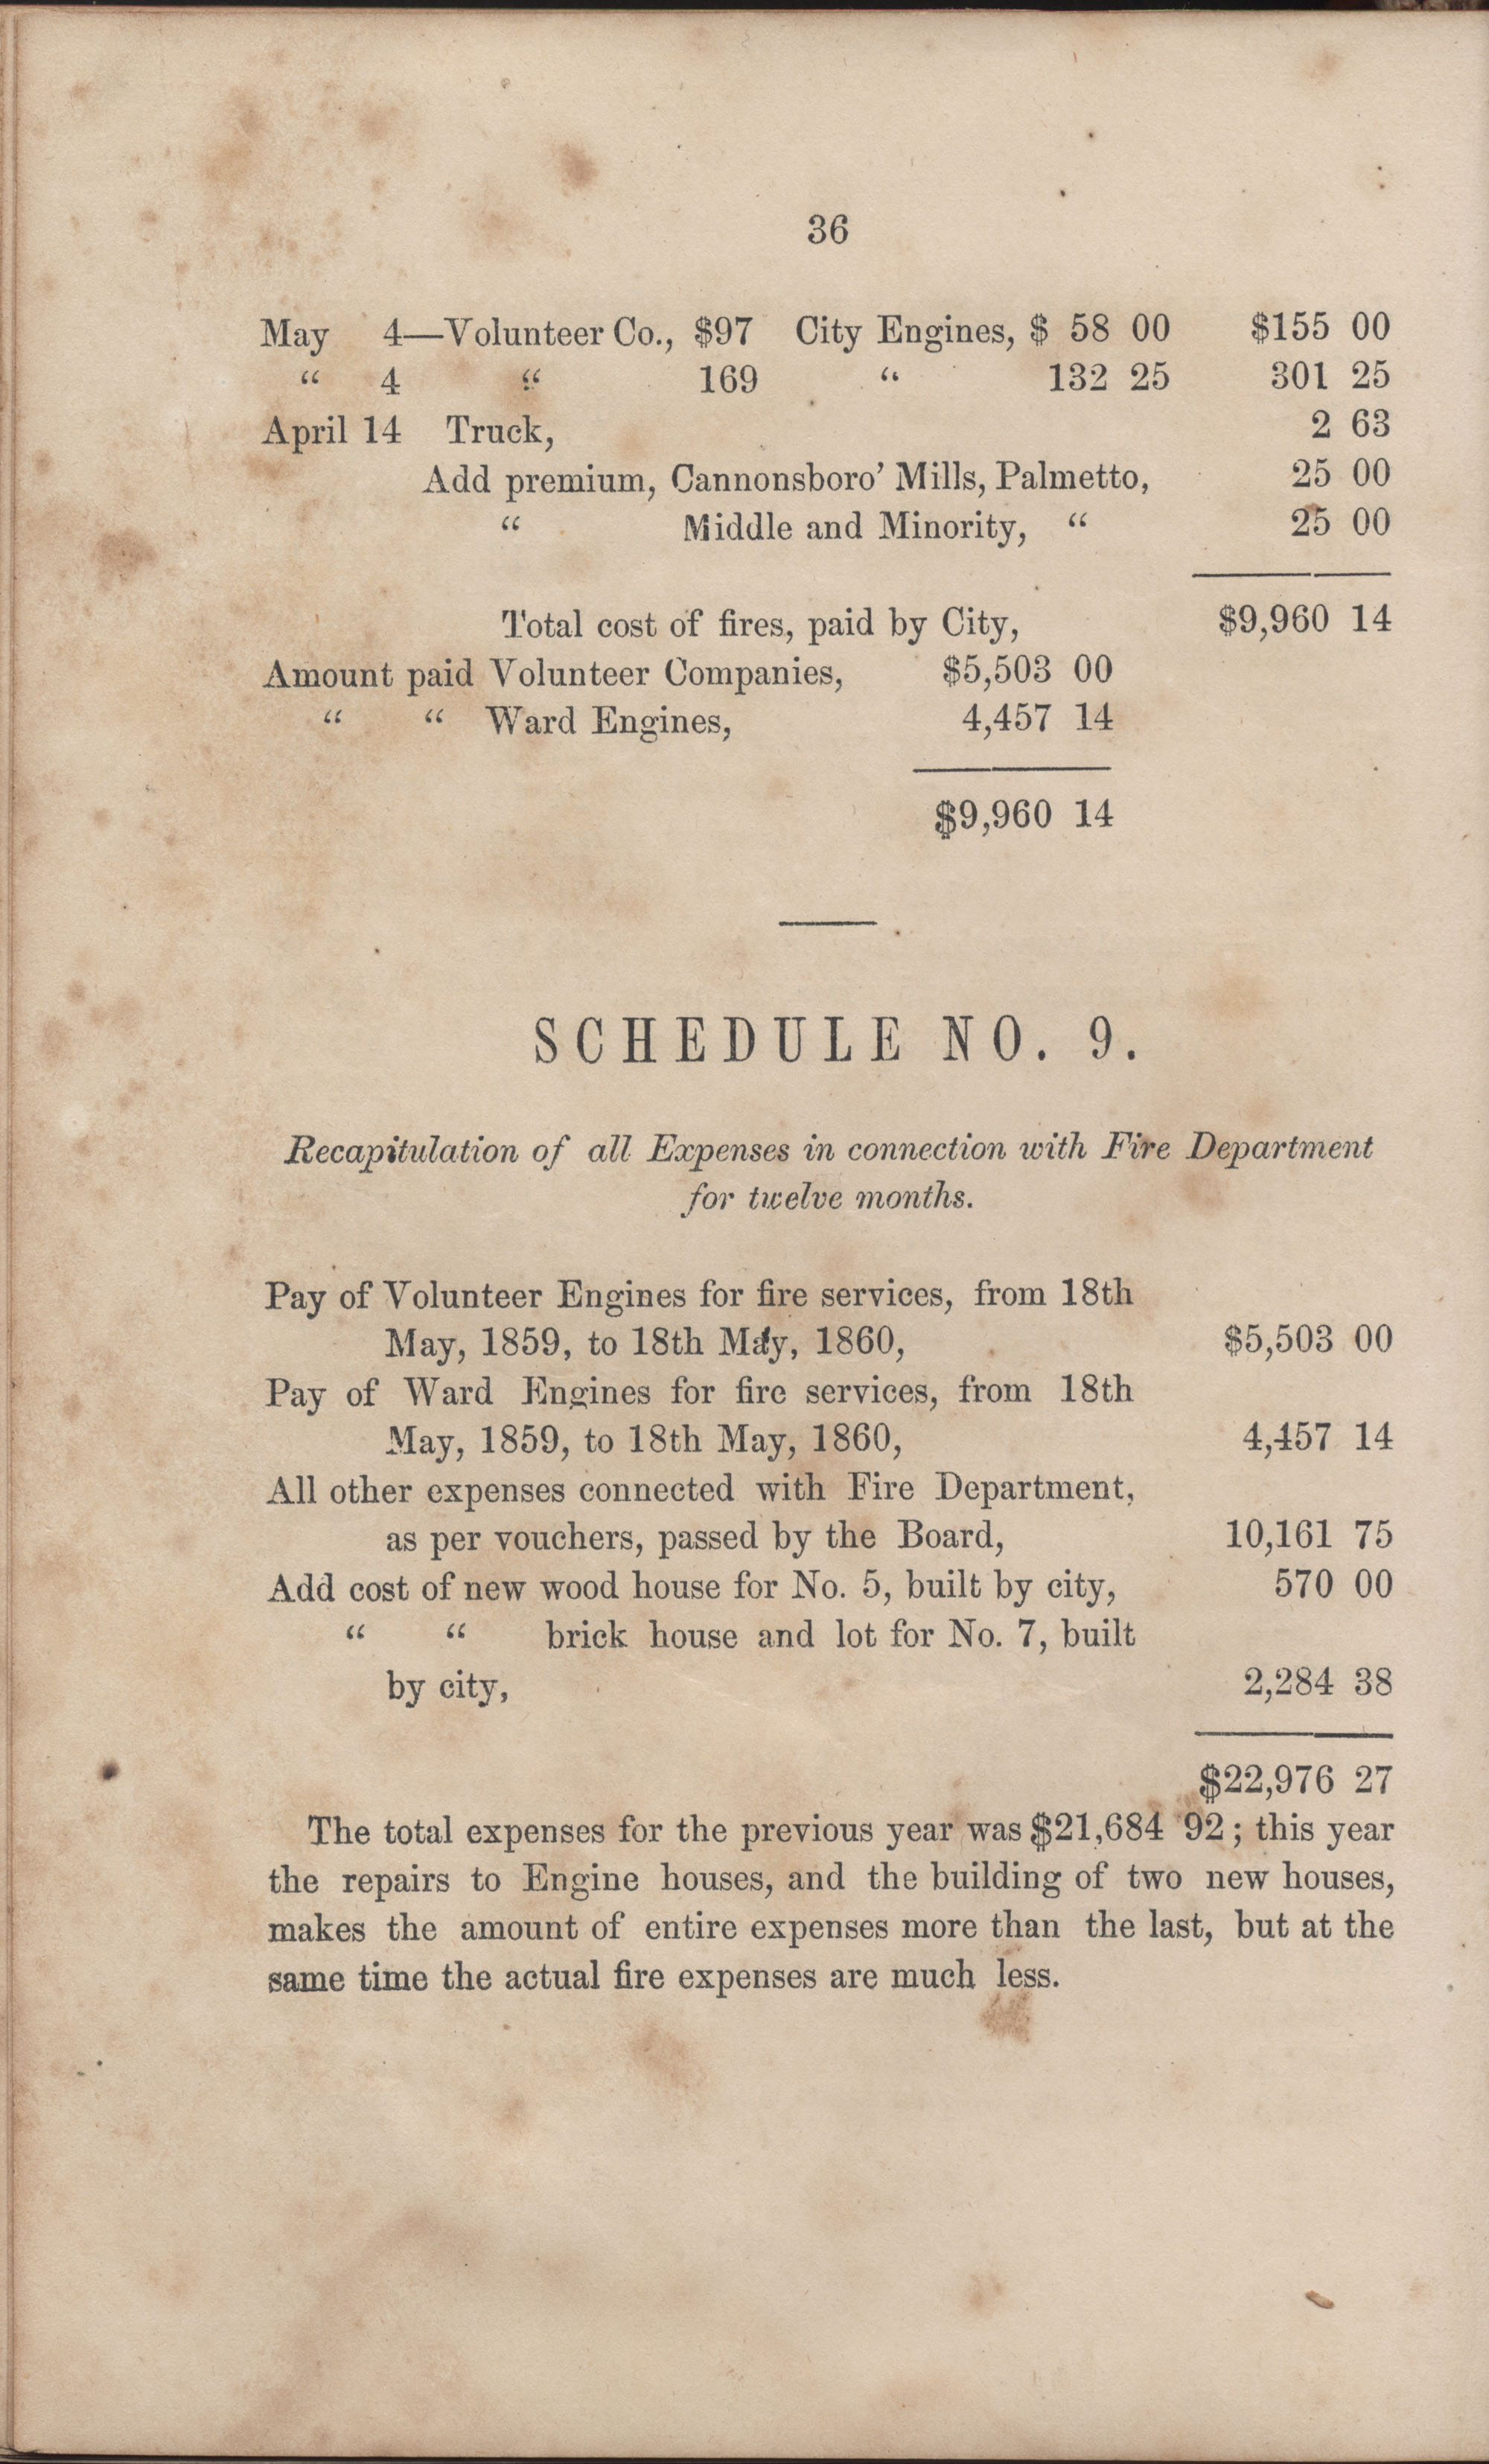 Annual Report of the Chief of the Fire Department of the City of Charleston, page 62